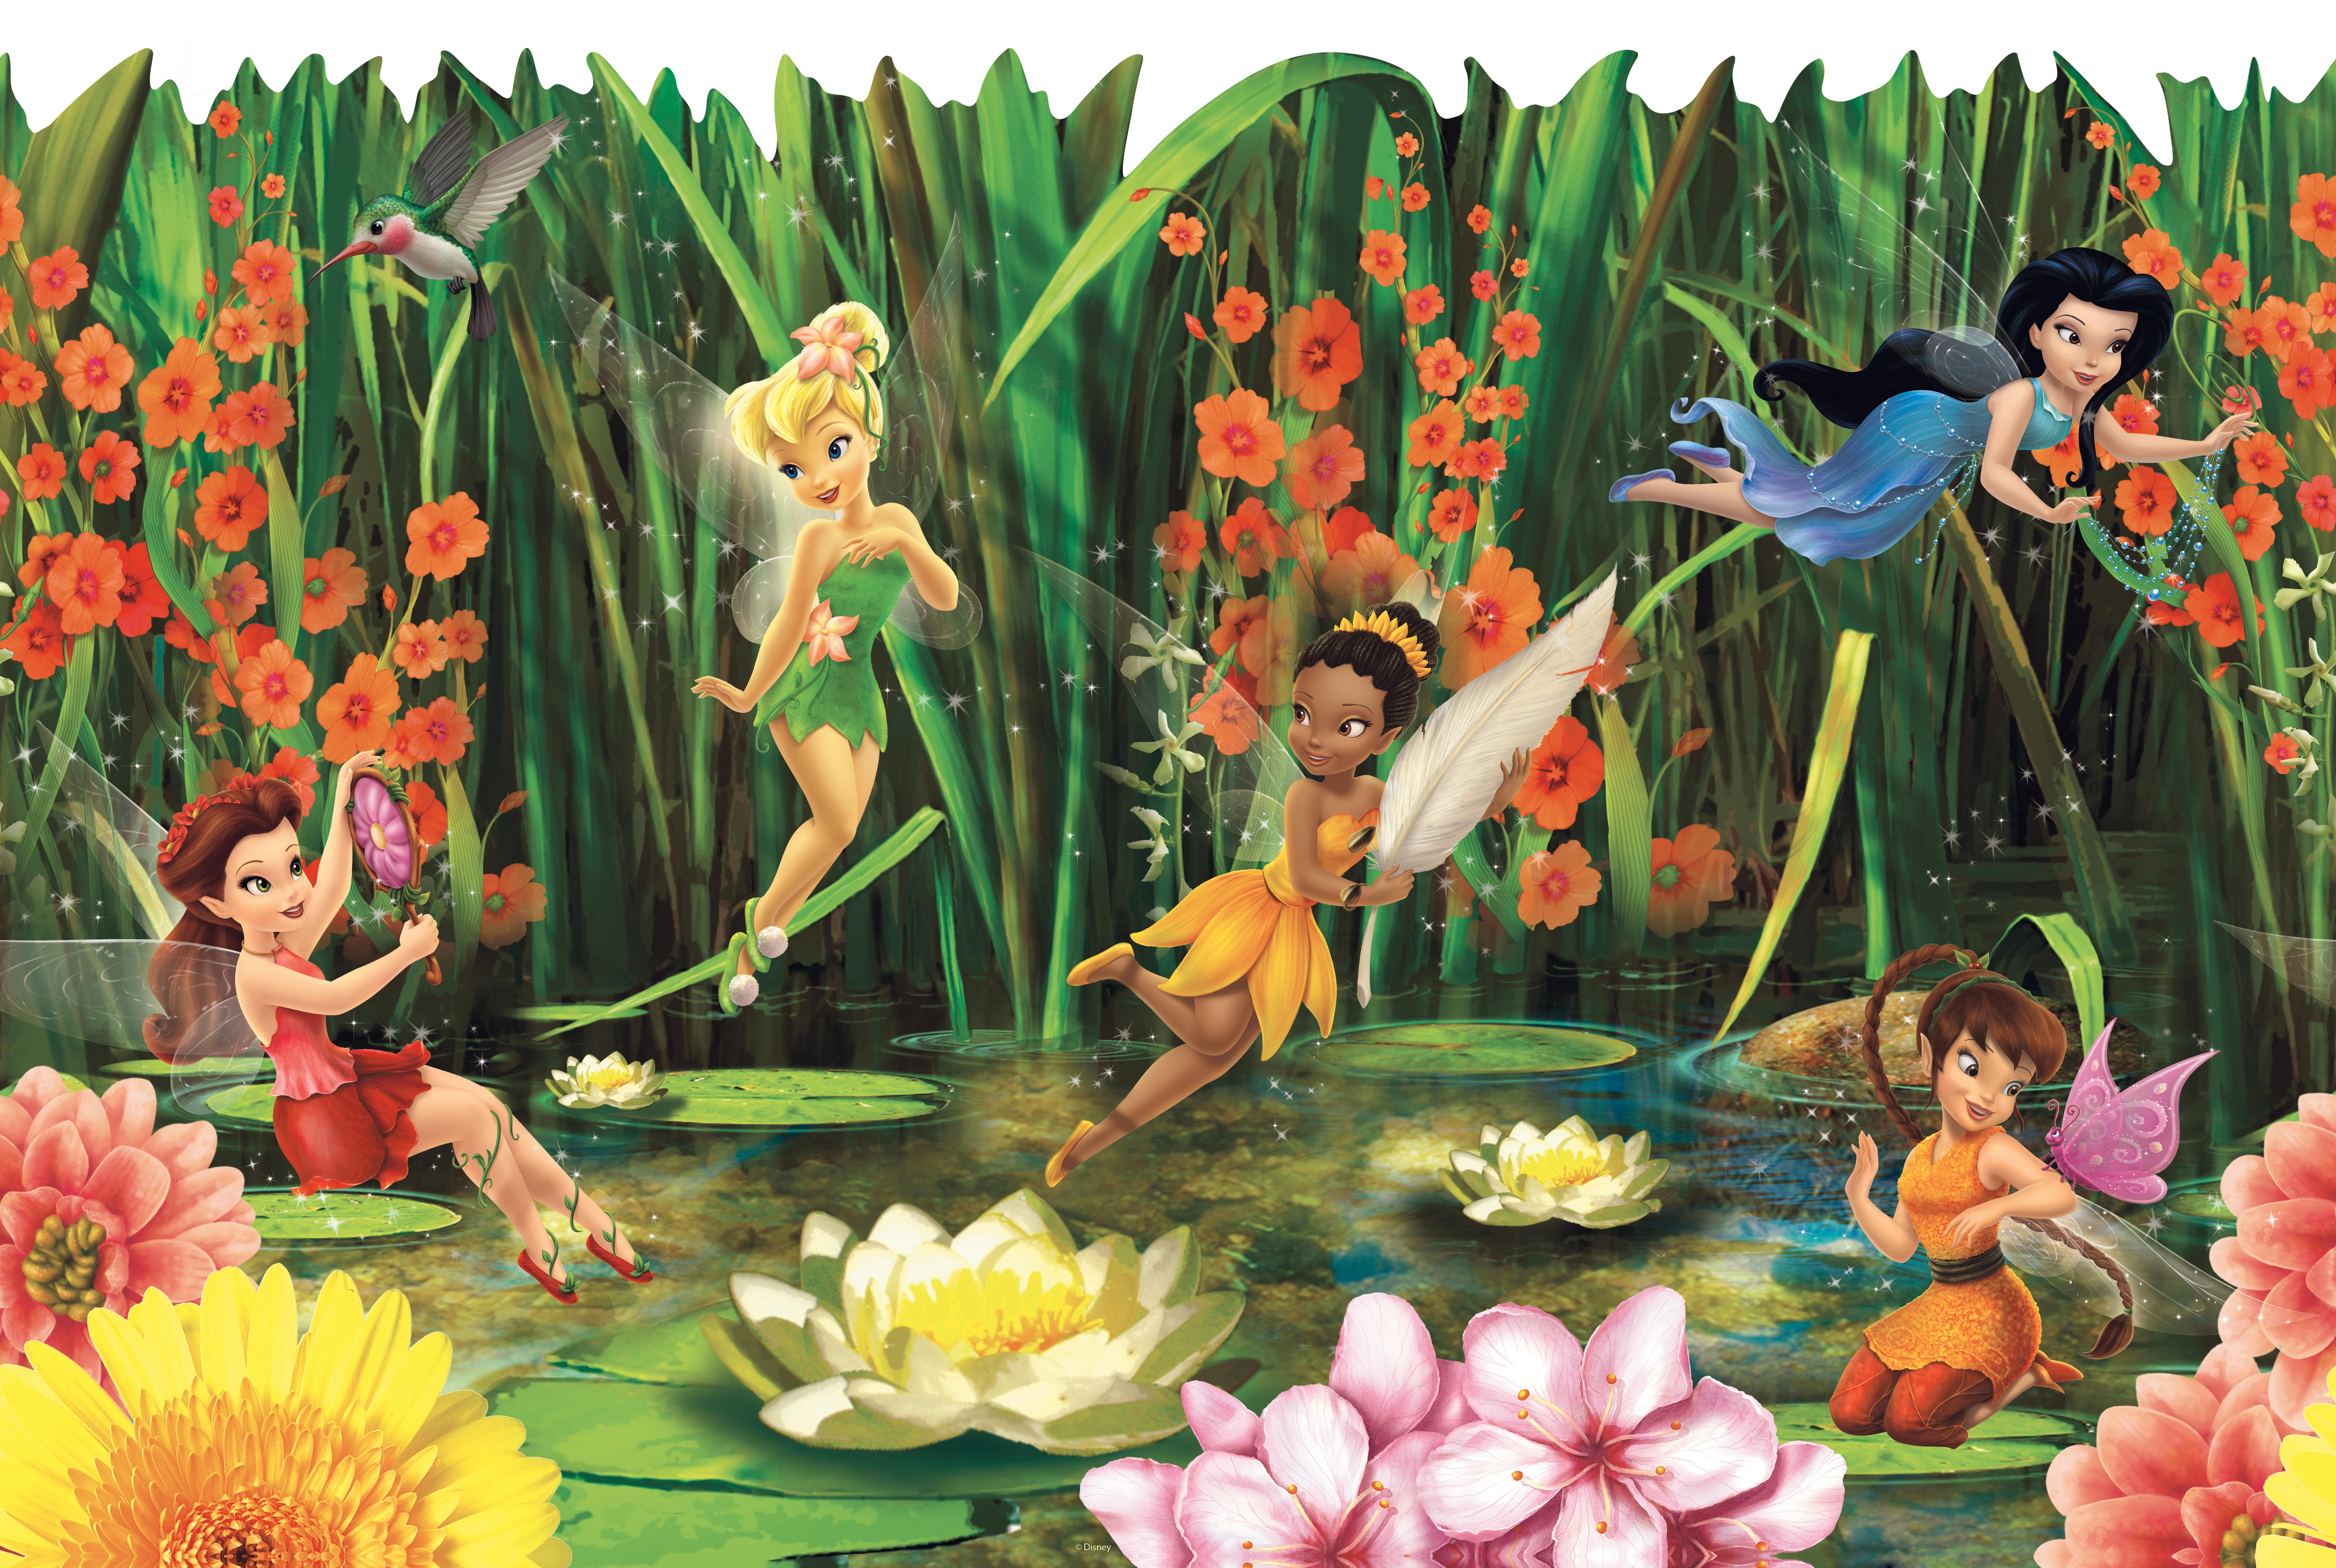 Bambini disney ~ Disney fairies fairies and lilly pads wall border interior